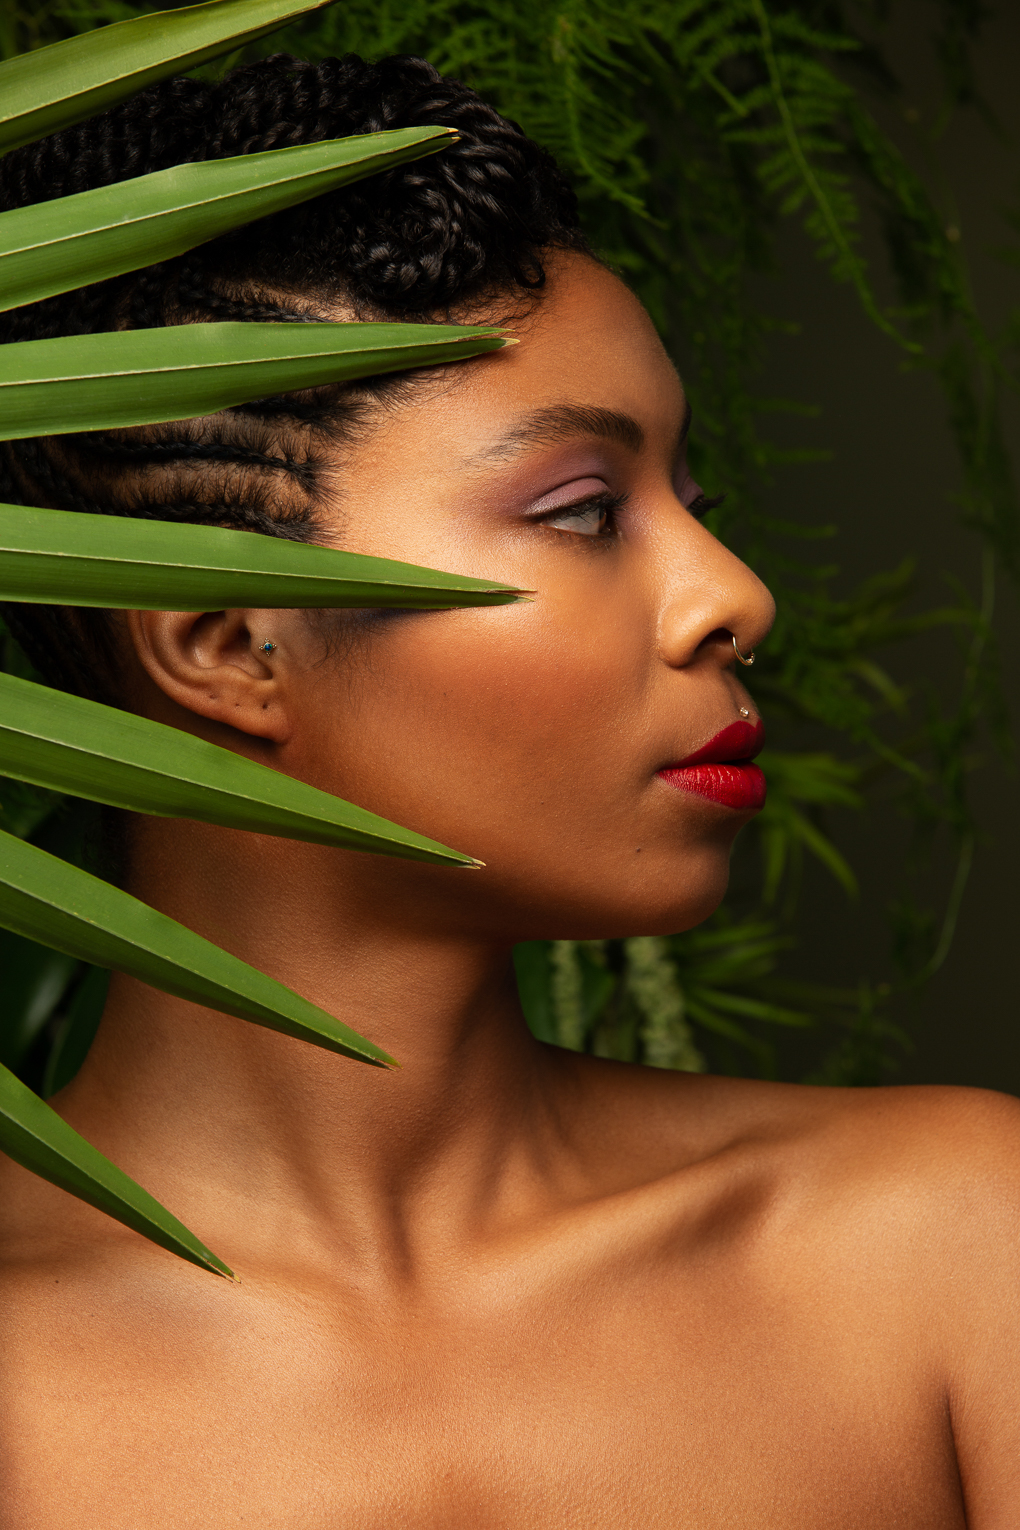 Profile view of woman with plants, cbd skincare advertising image by beauty photographer Ella Sophie